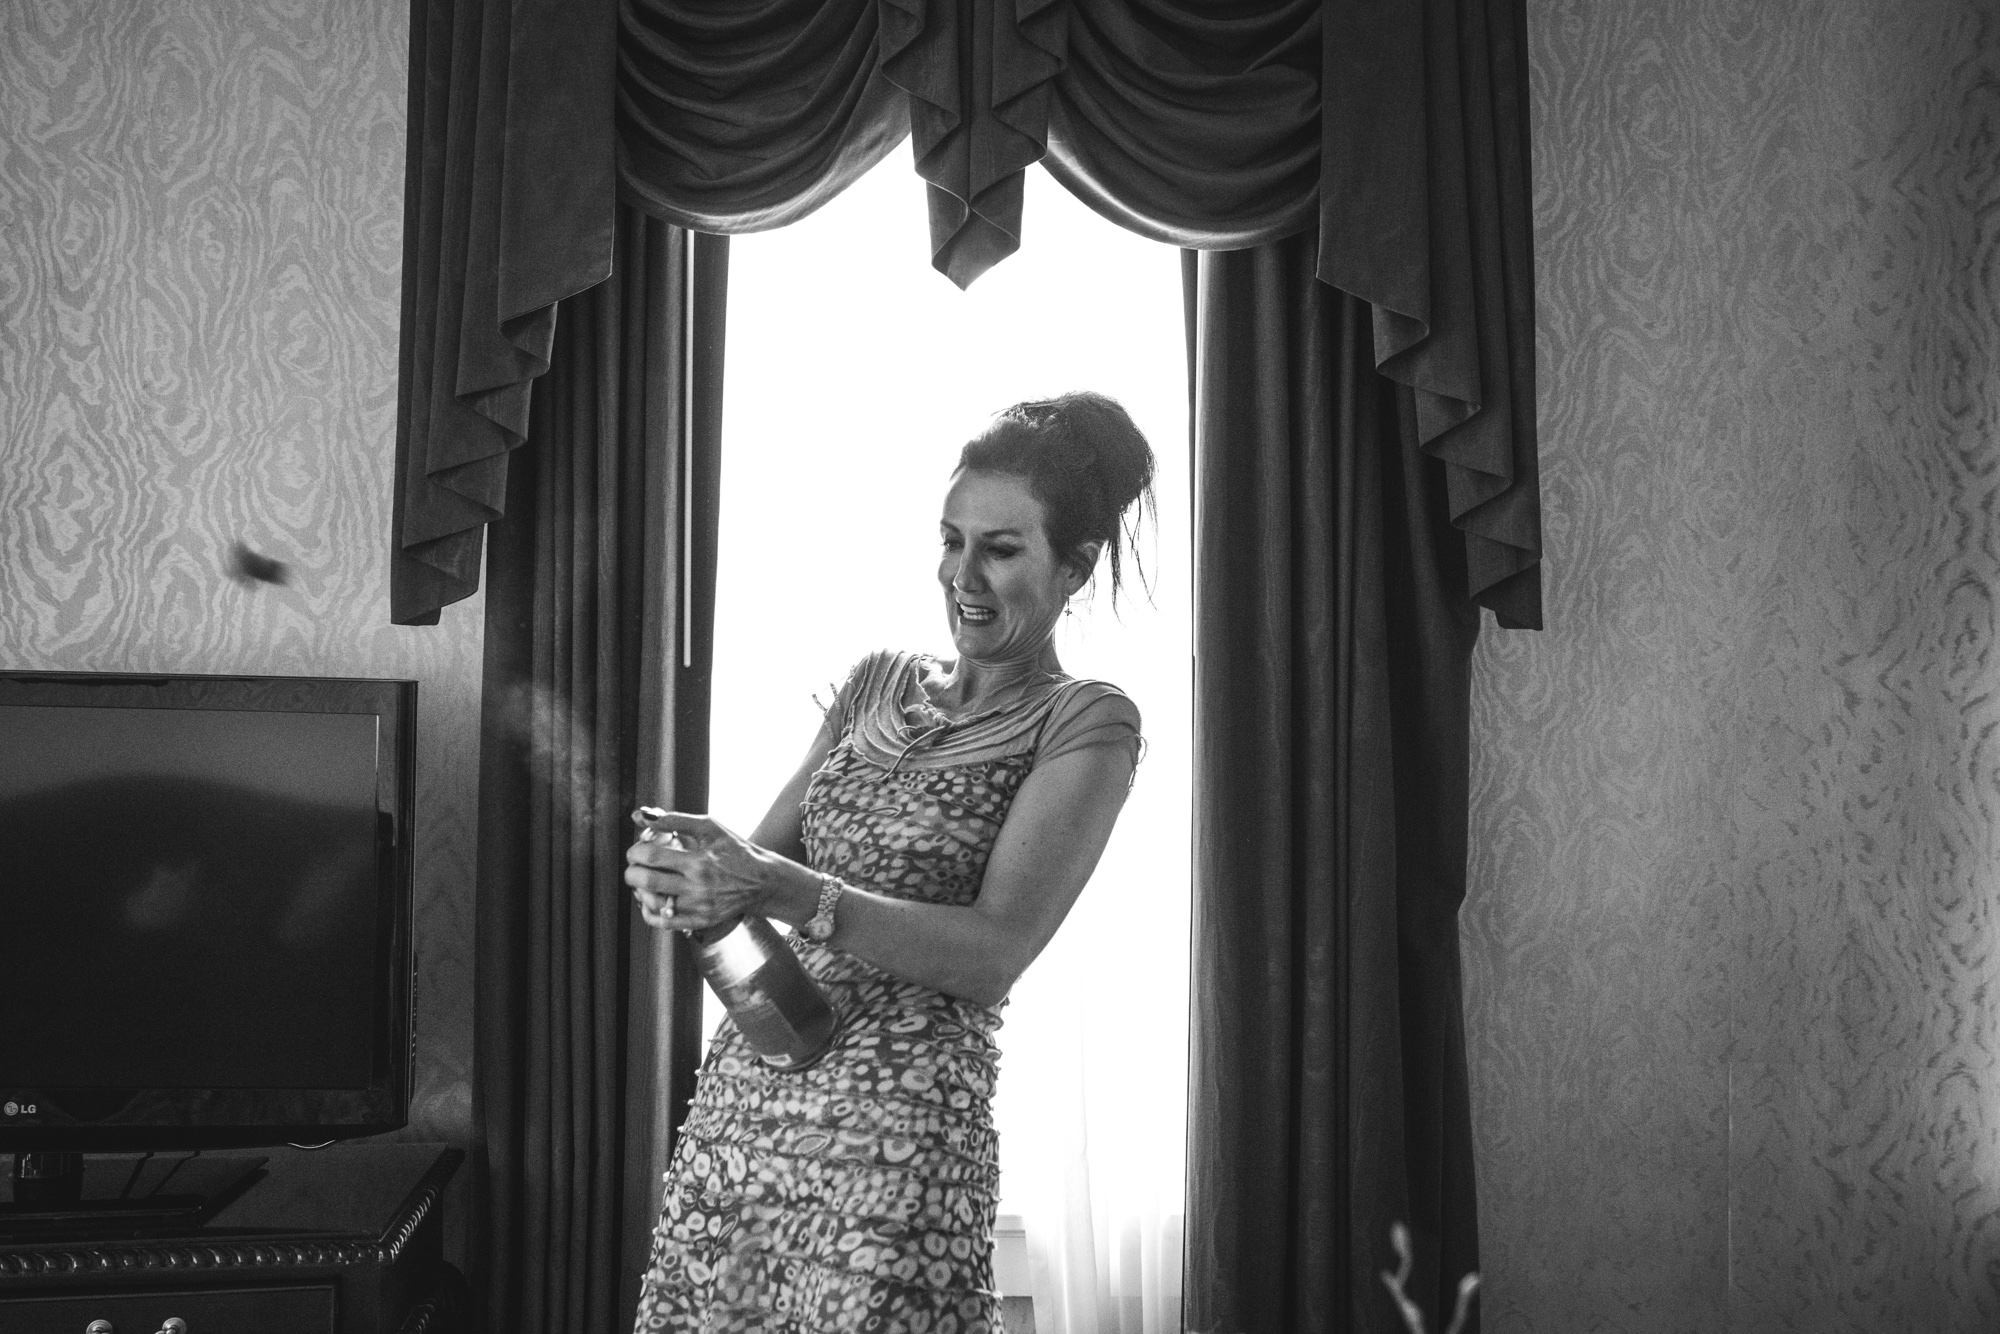 Black and white wedding photo of a woman in a dress popping a bottle of champagne in a room in the Hotel Boulderado